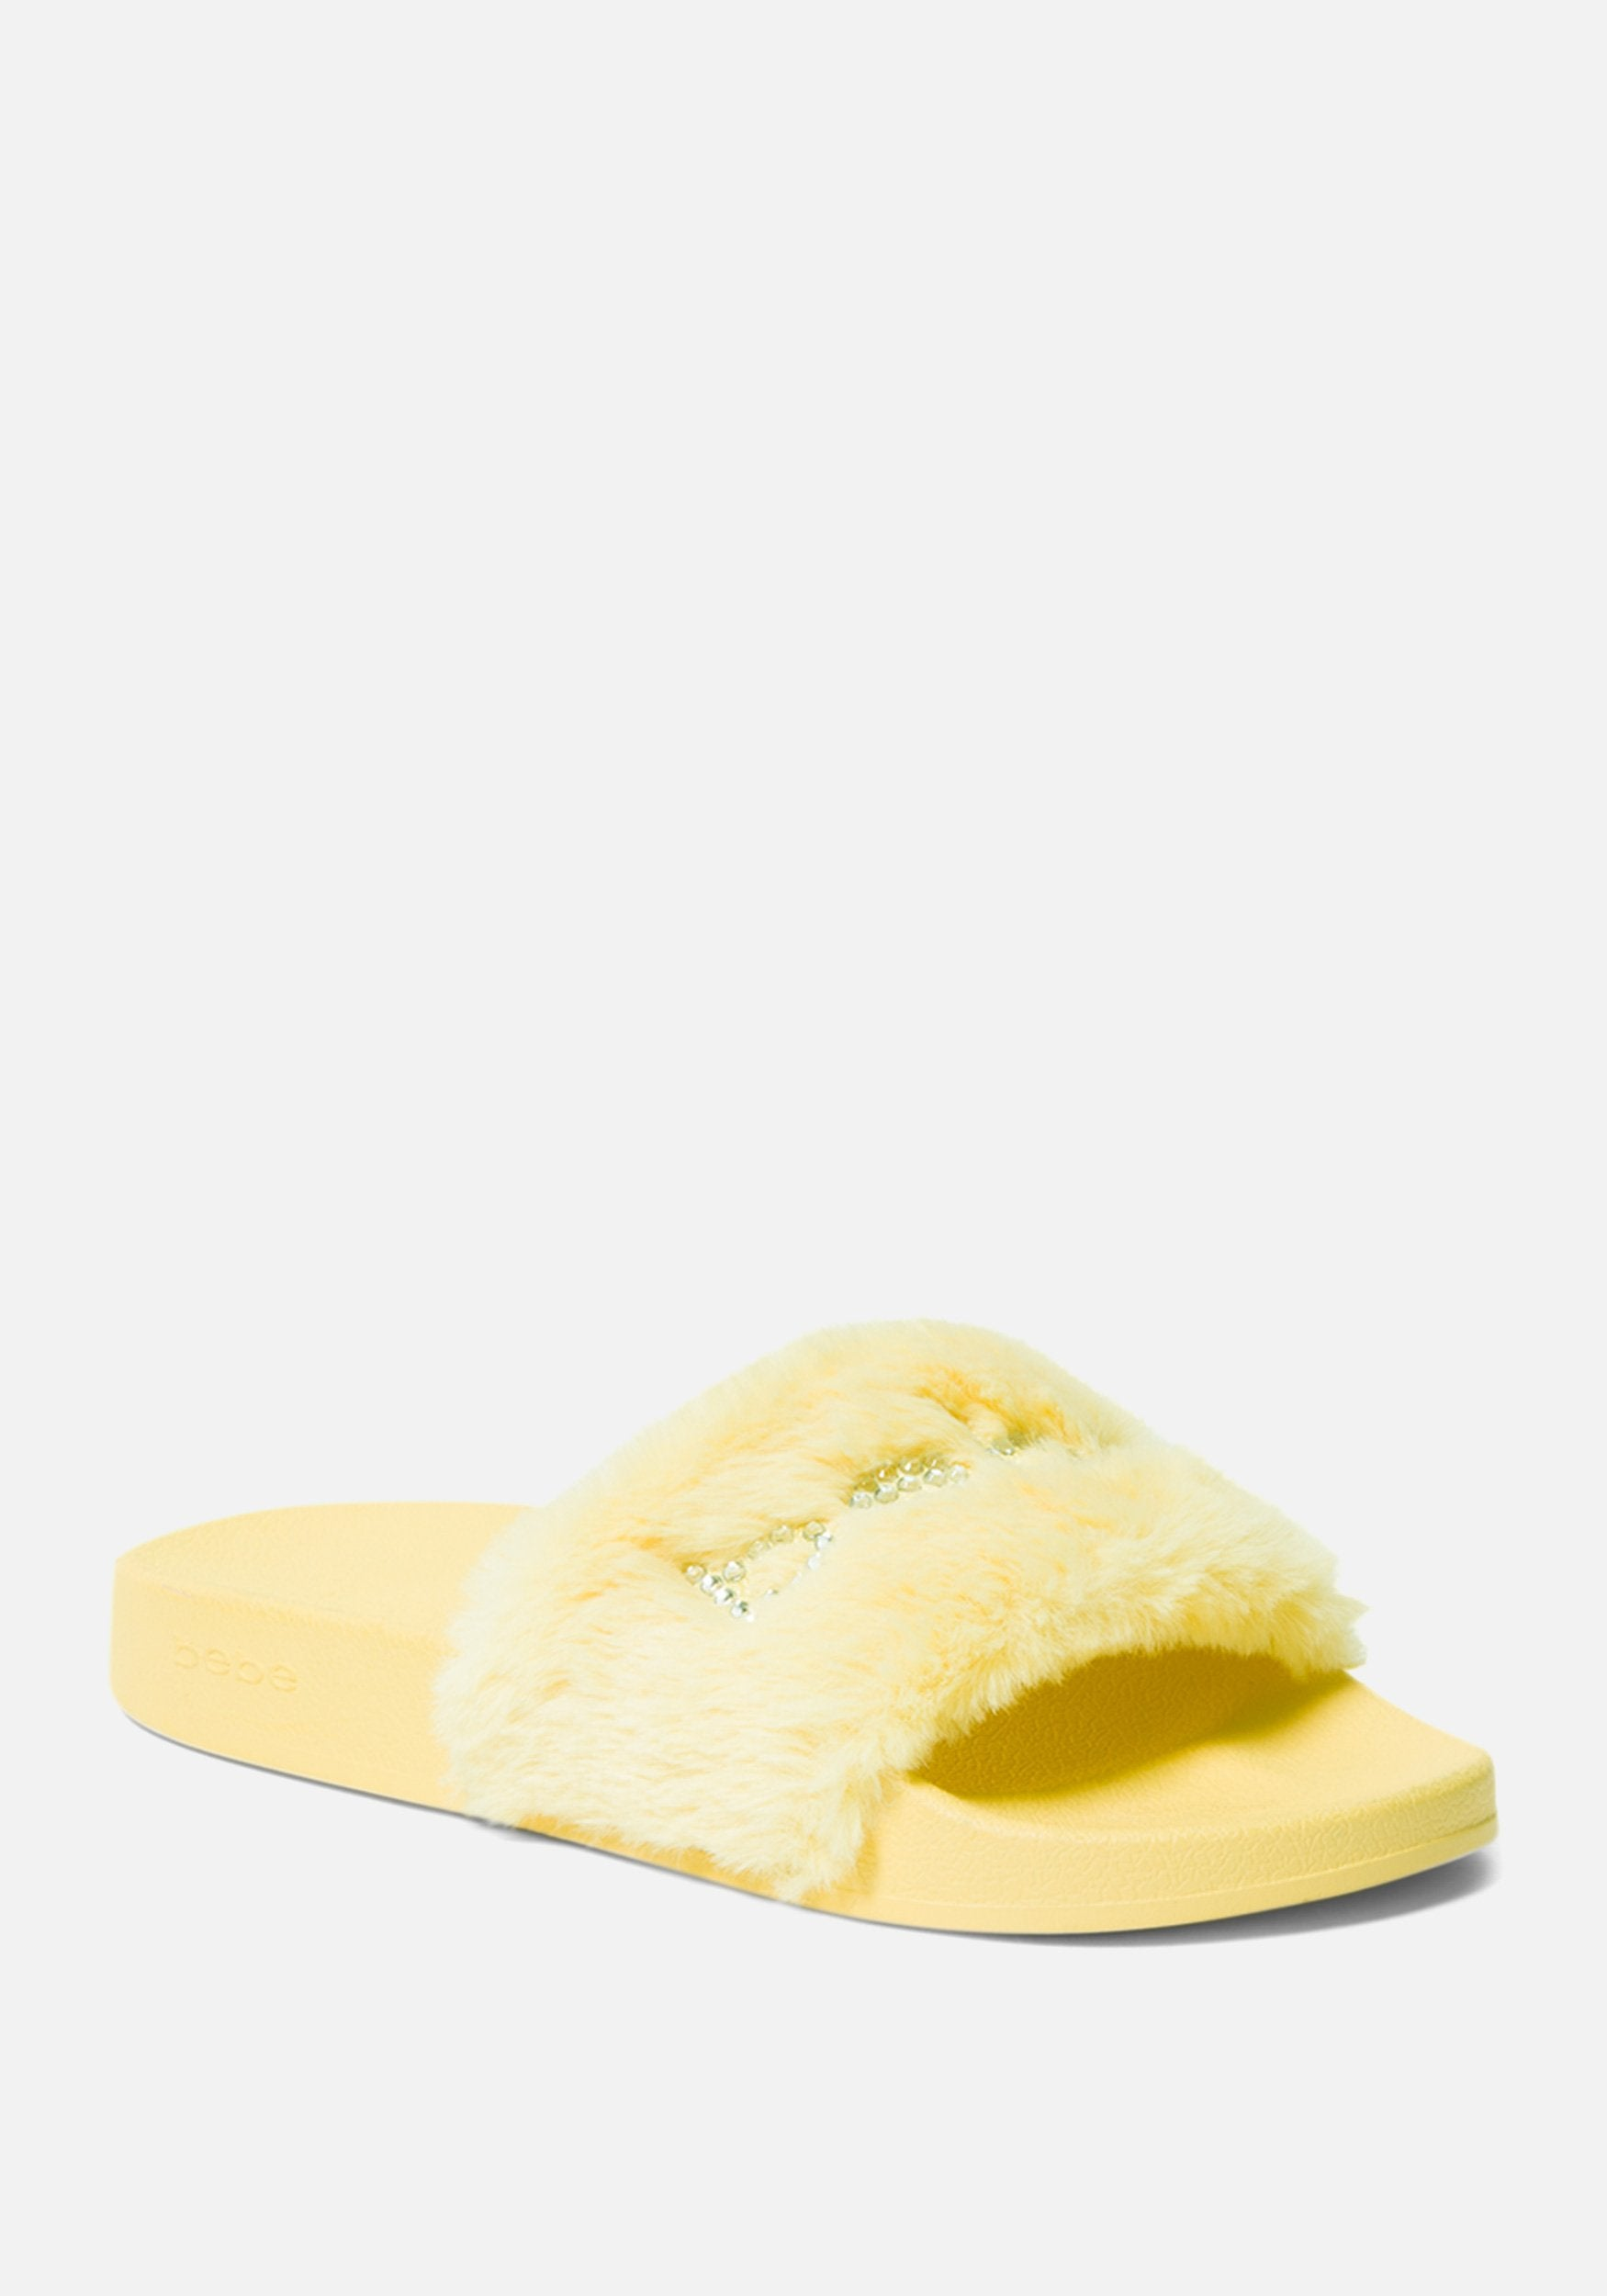 Bebe Women's Furiosa Faux Fur Slides Shoe, Size 6 in YELLOW Synthetic